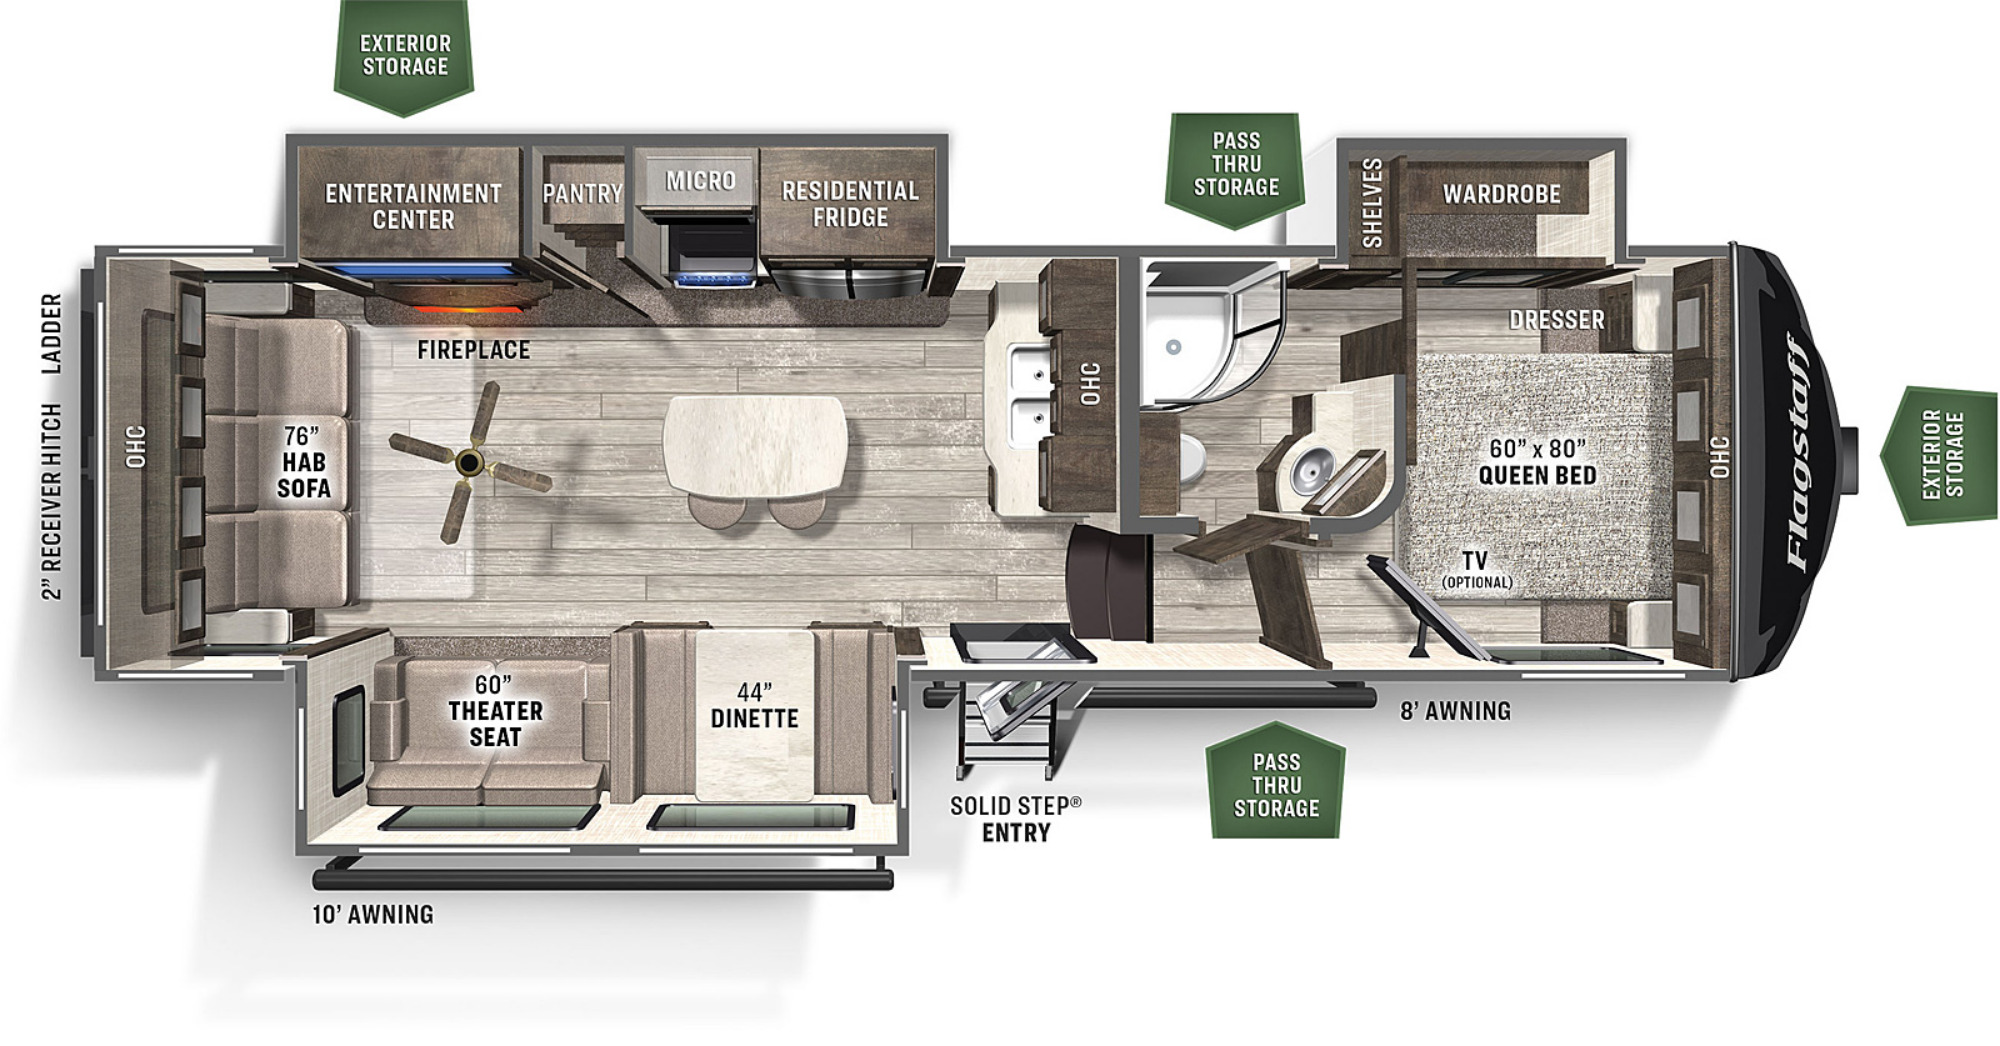 View Floor Plan for 2021 FOREST RIVER FLAGSTAFF SUPER LITE 528IKRL